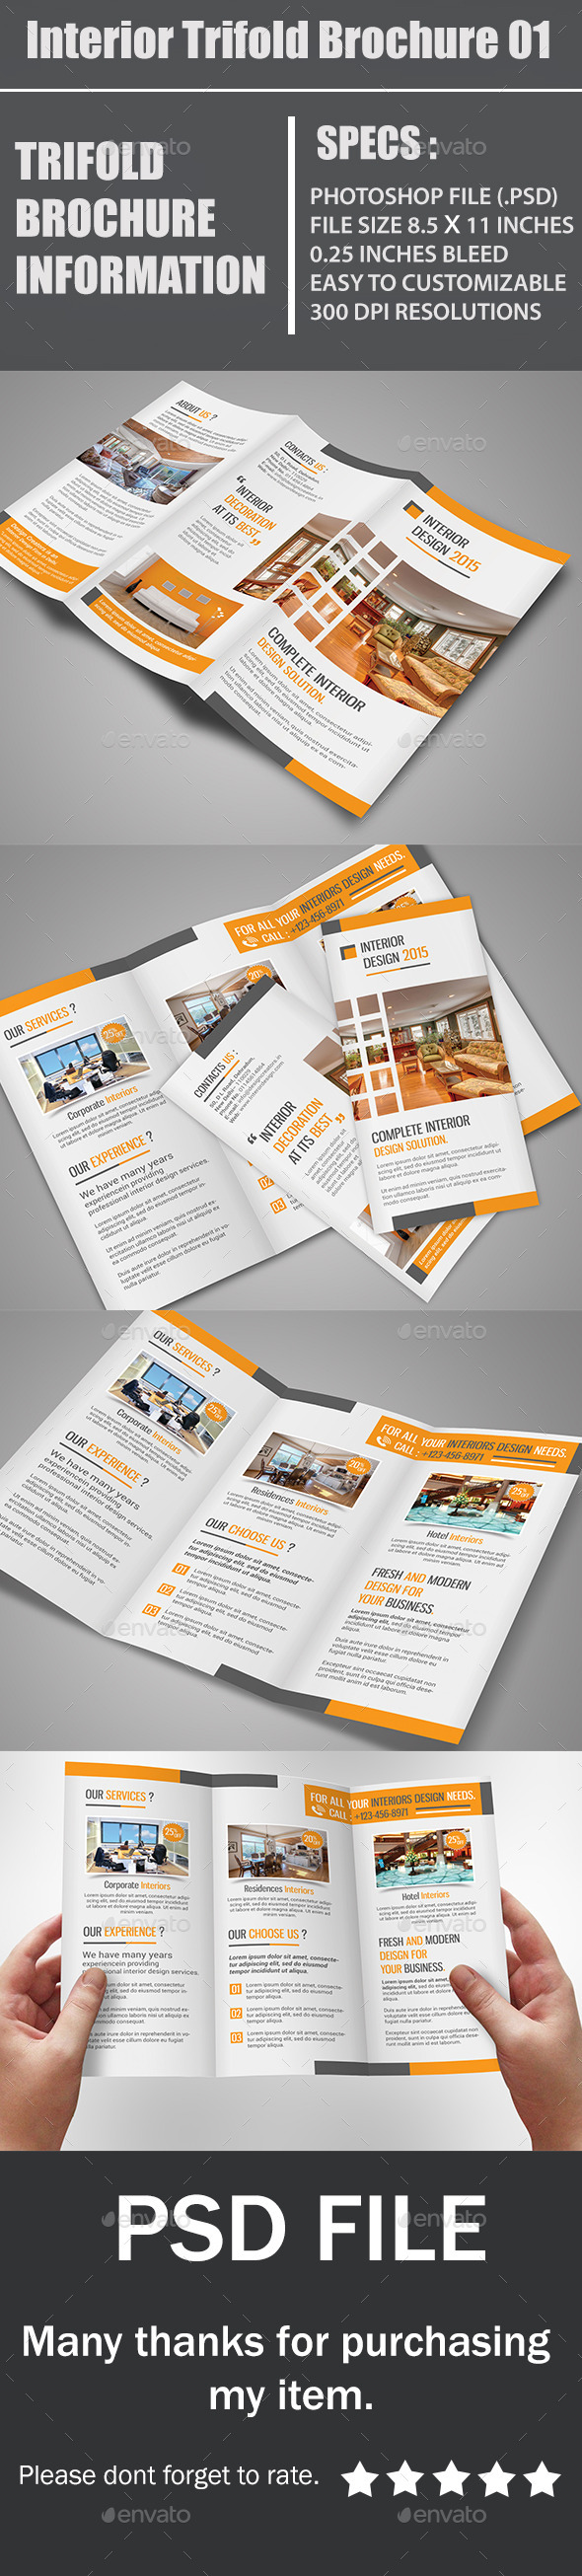 GraphicRiver Interior Trifold Brochure 01 10794614